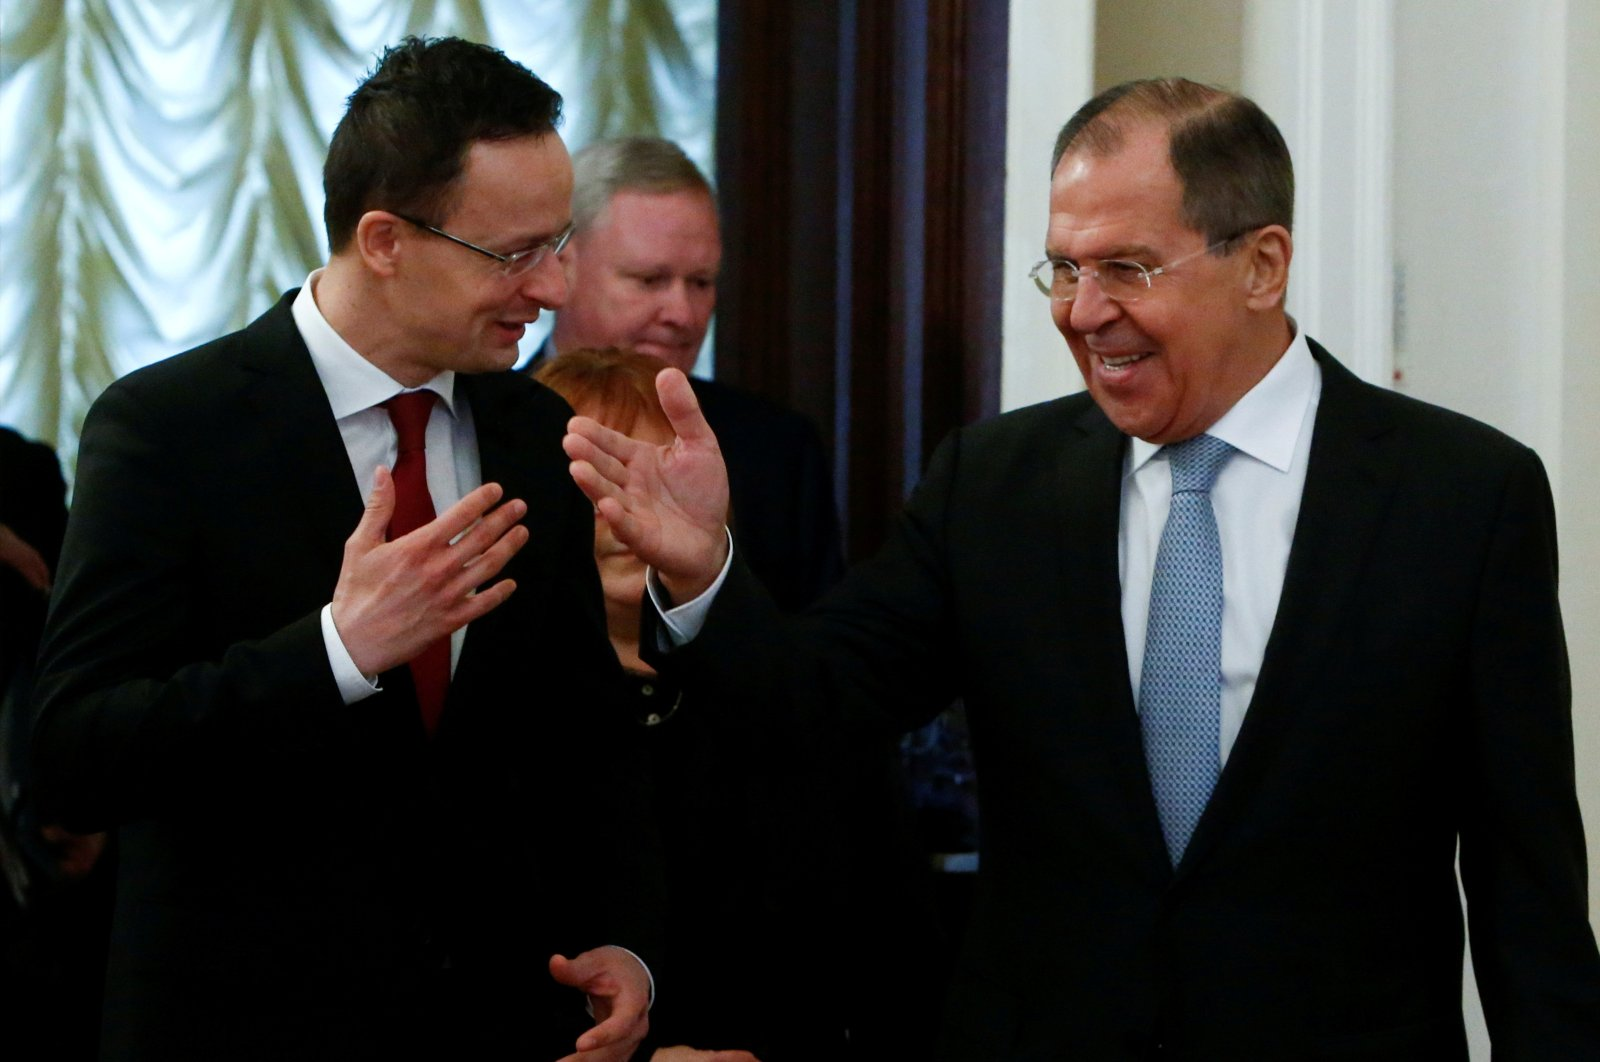 Hungary's Foreign Minister Peter Szijjarto (L) and his Russian counterpartSergei Lavrov enter a hall during their meeting in Moscow, Russia, Jan.23, 2017. (Reuters Photo)